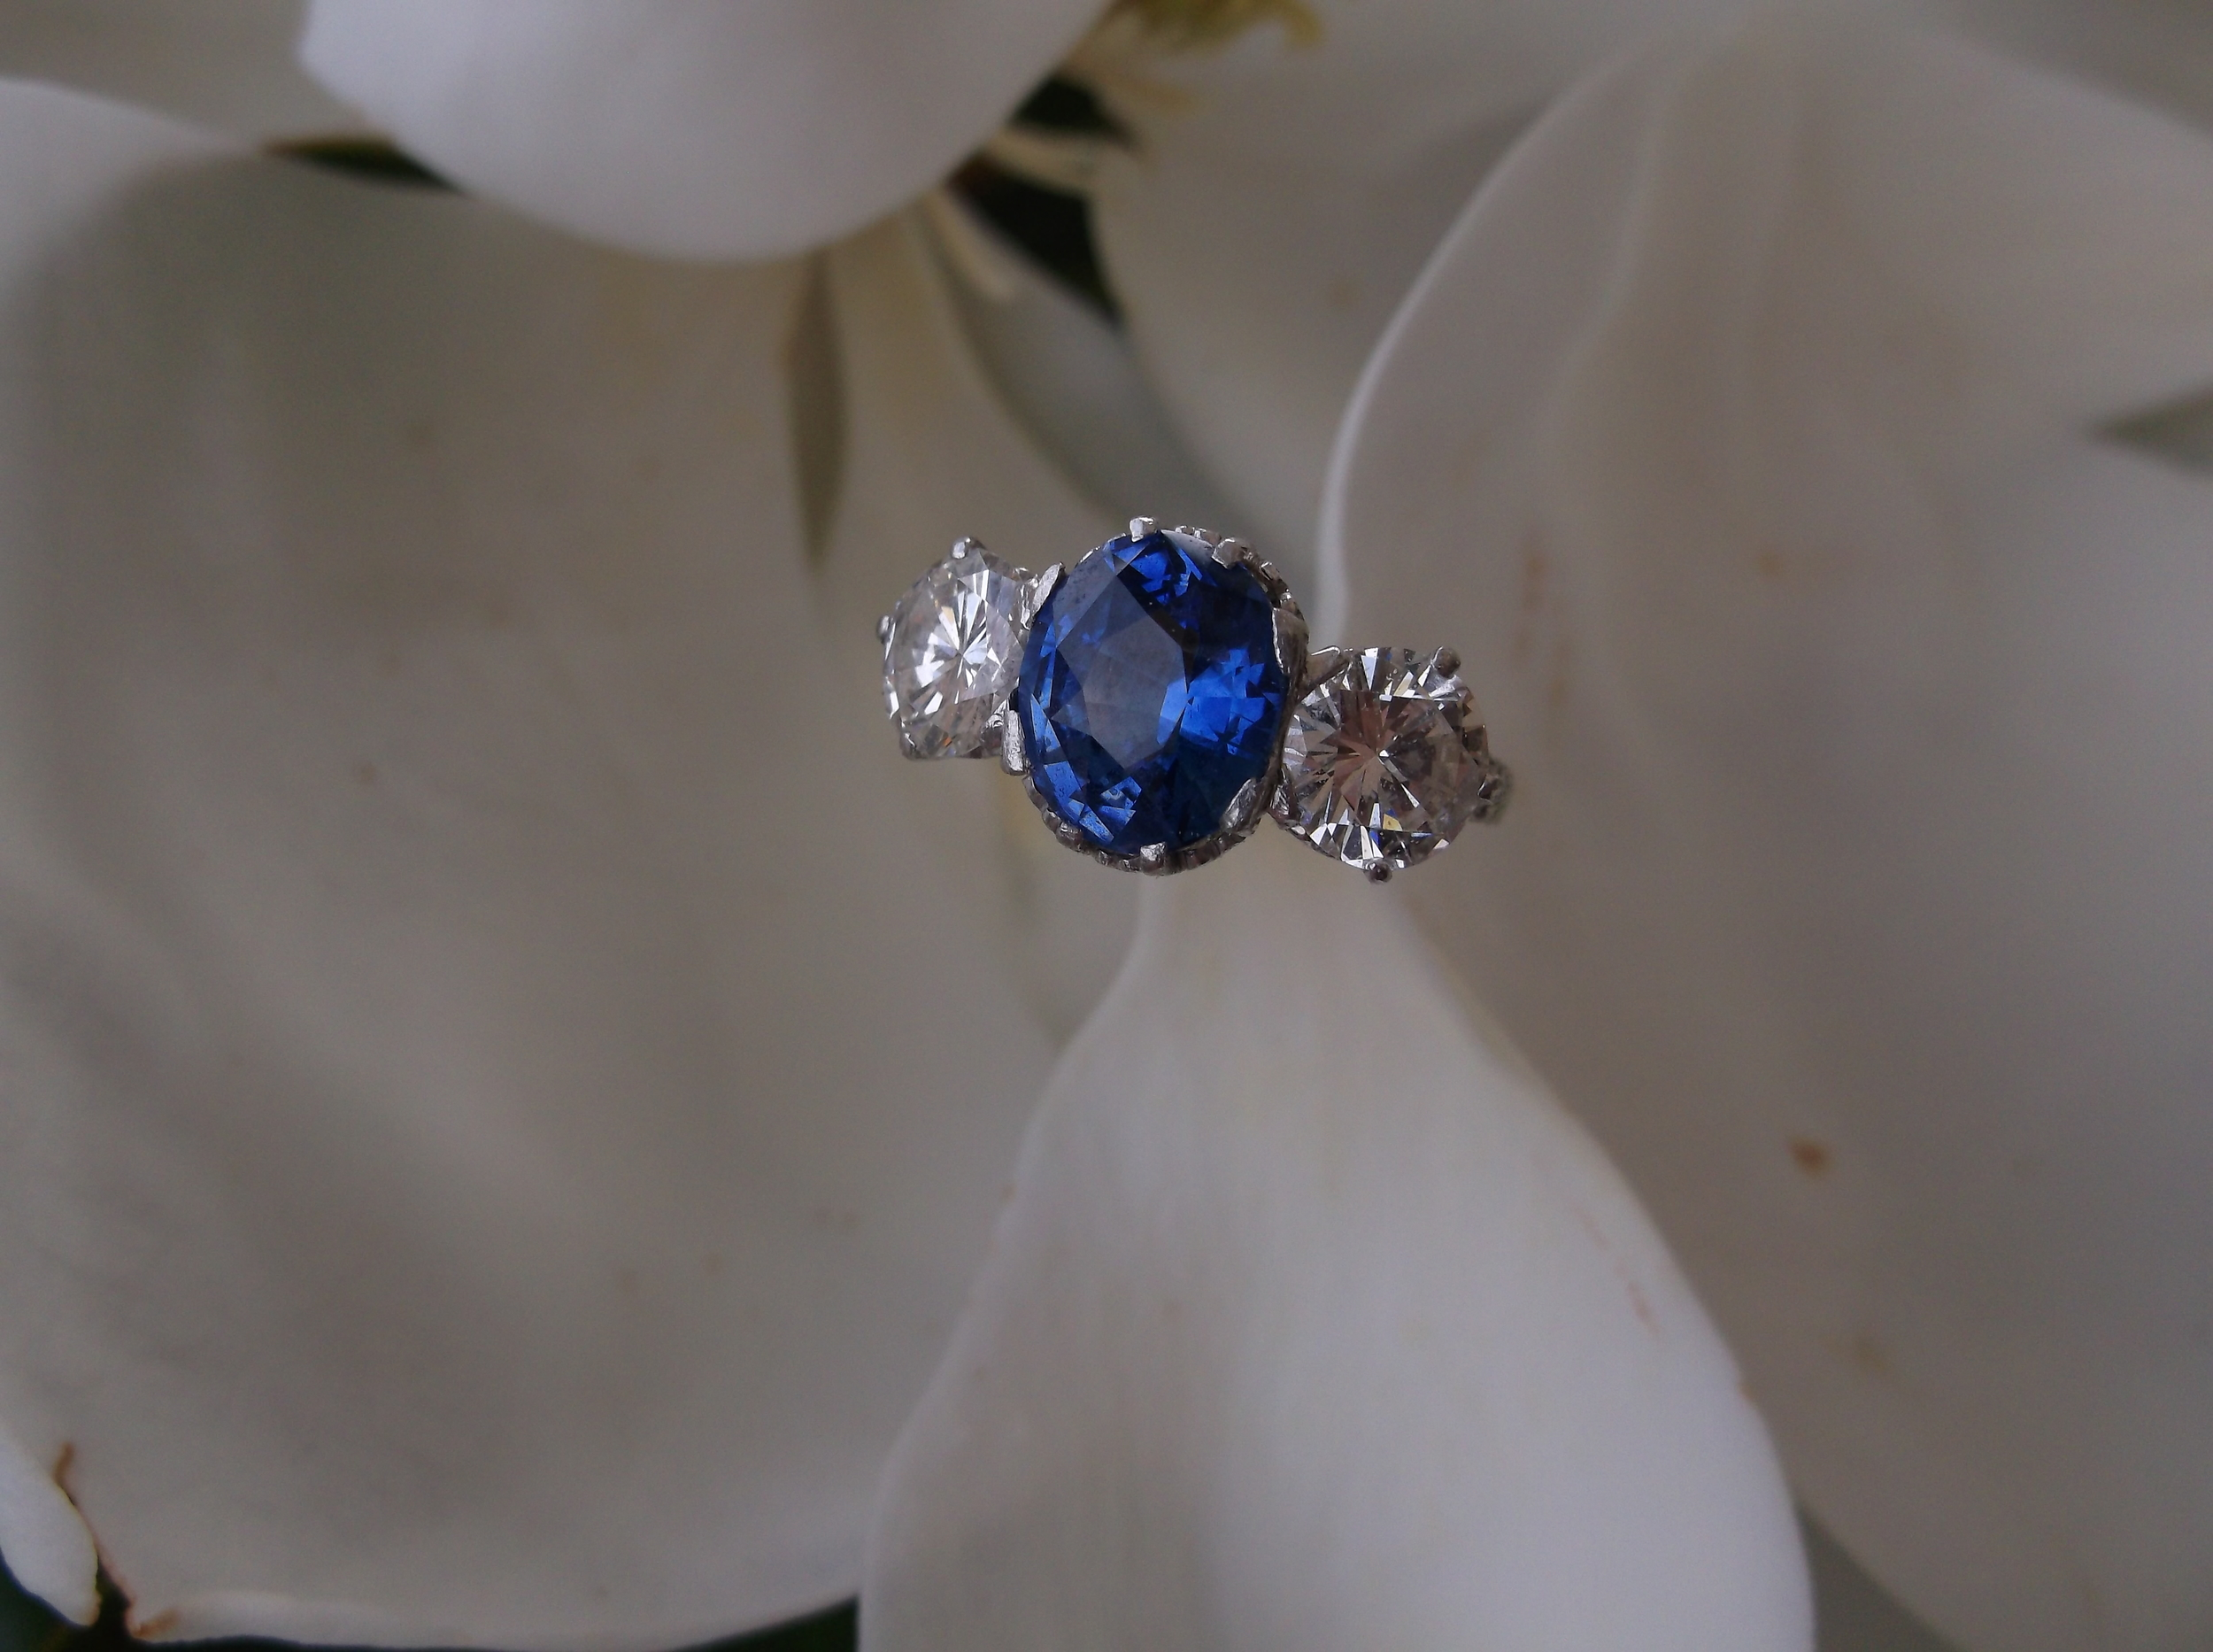 In 1980, Melba's experienced a total loss in the robbery that occurred at her jewelry store in Carter's Court. In 1982, the stolen jewelry was located in Phoenix, Arizona. This particular ring was one of recovered pieces, an Art Deco diamond and sapphire ring.